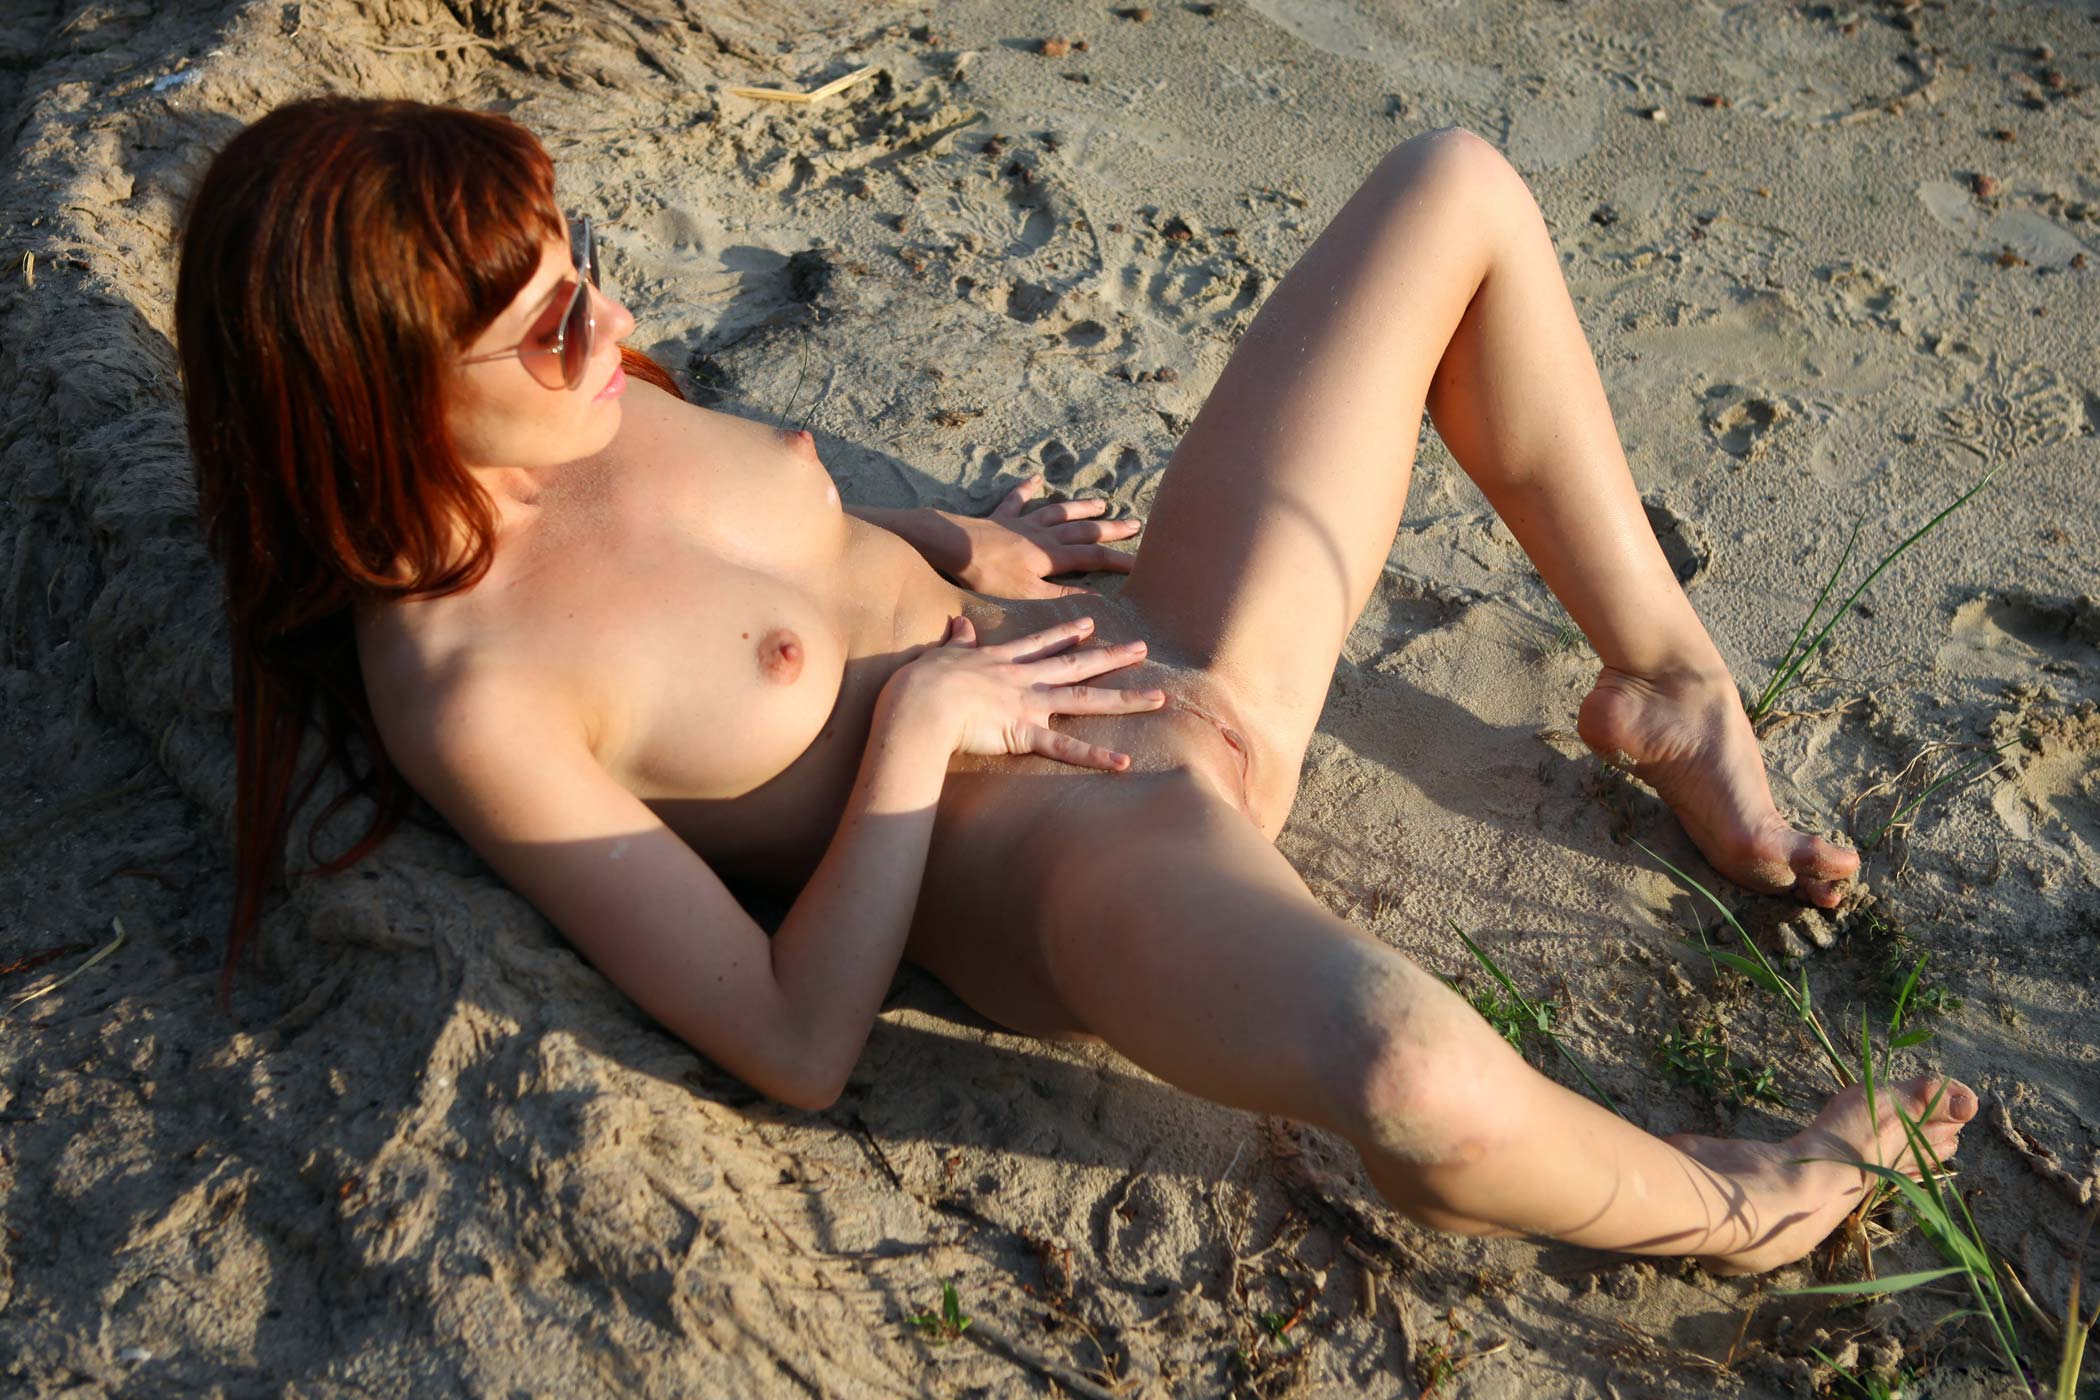 nude-girls-sunglasses-boobs-naked-mix-26